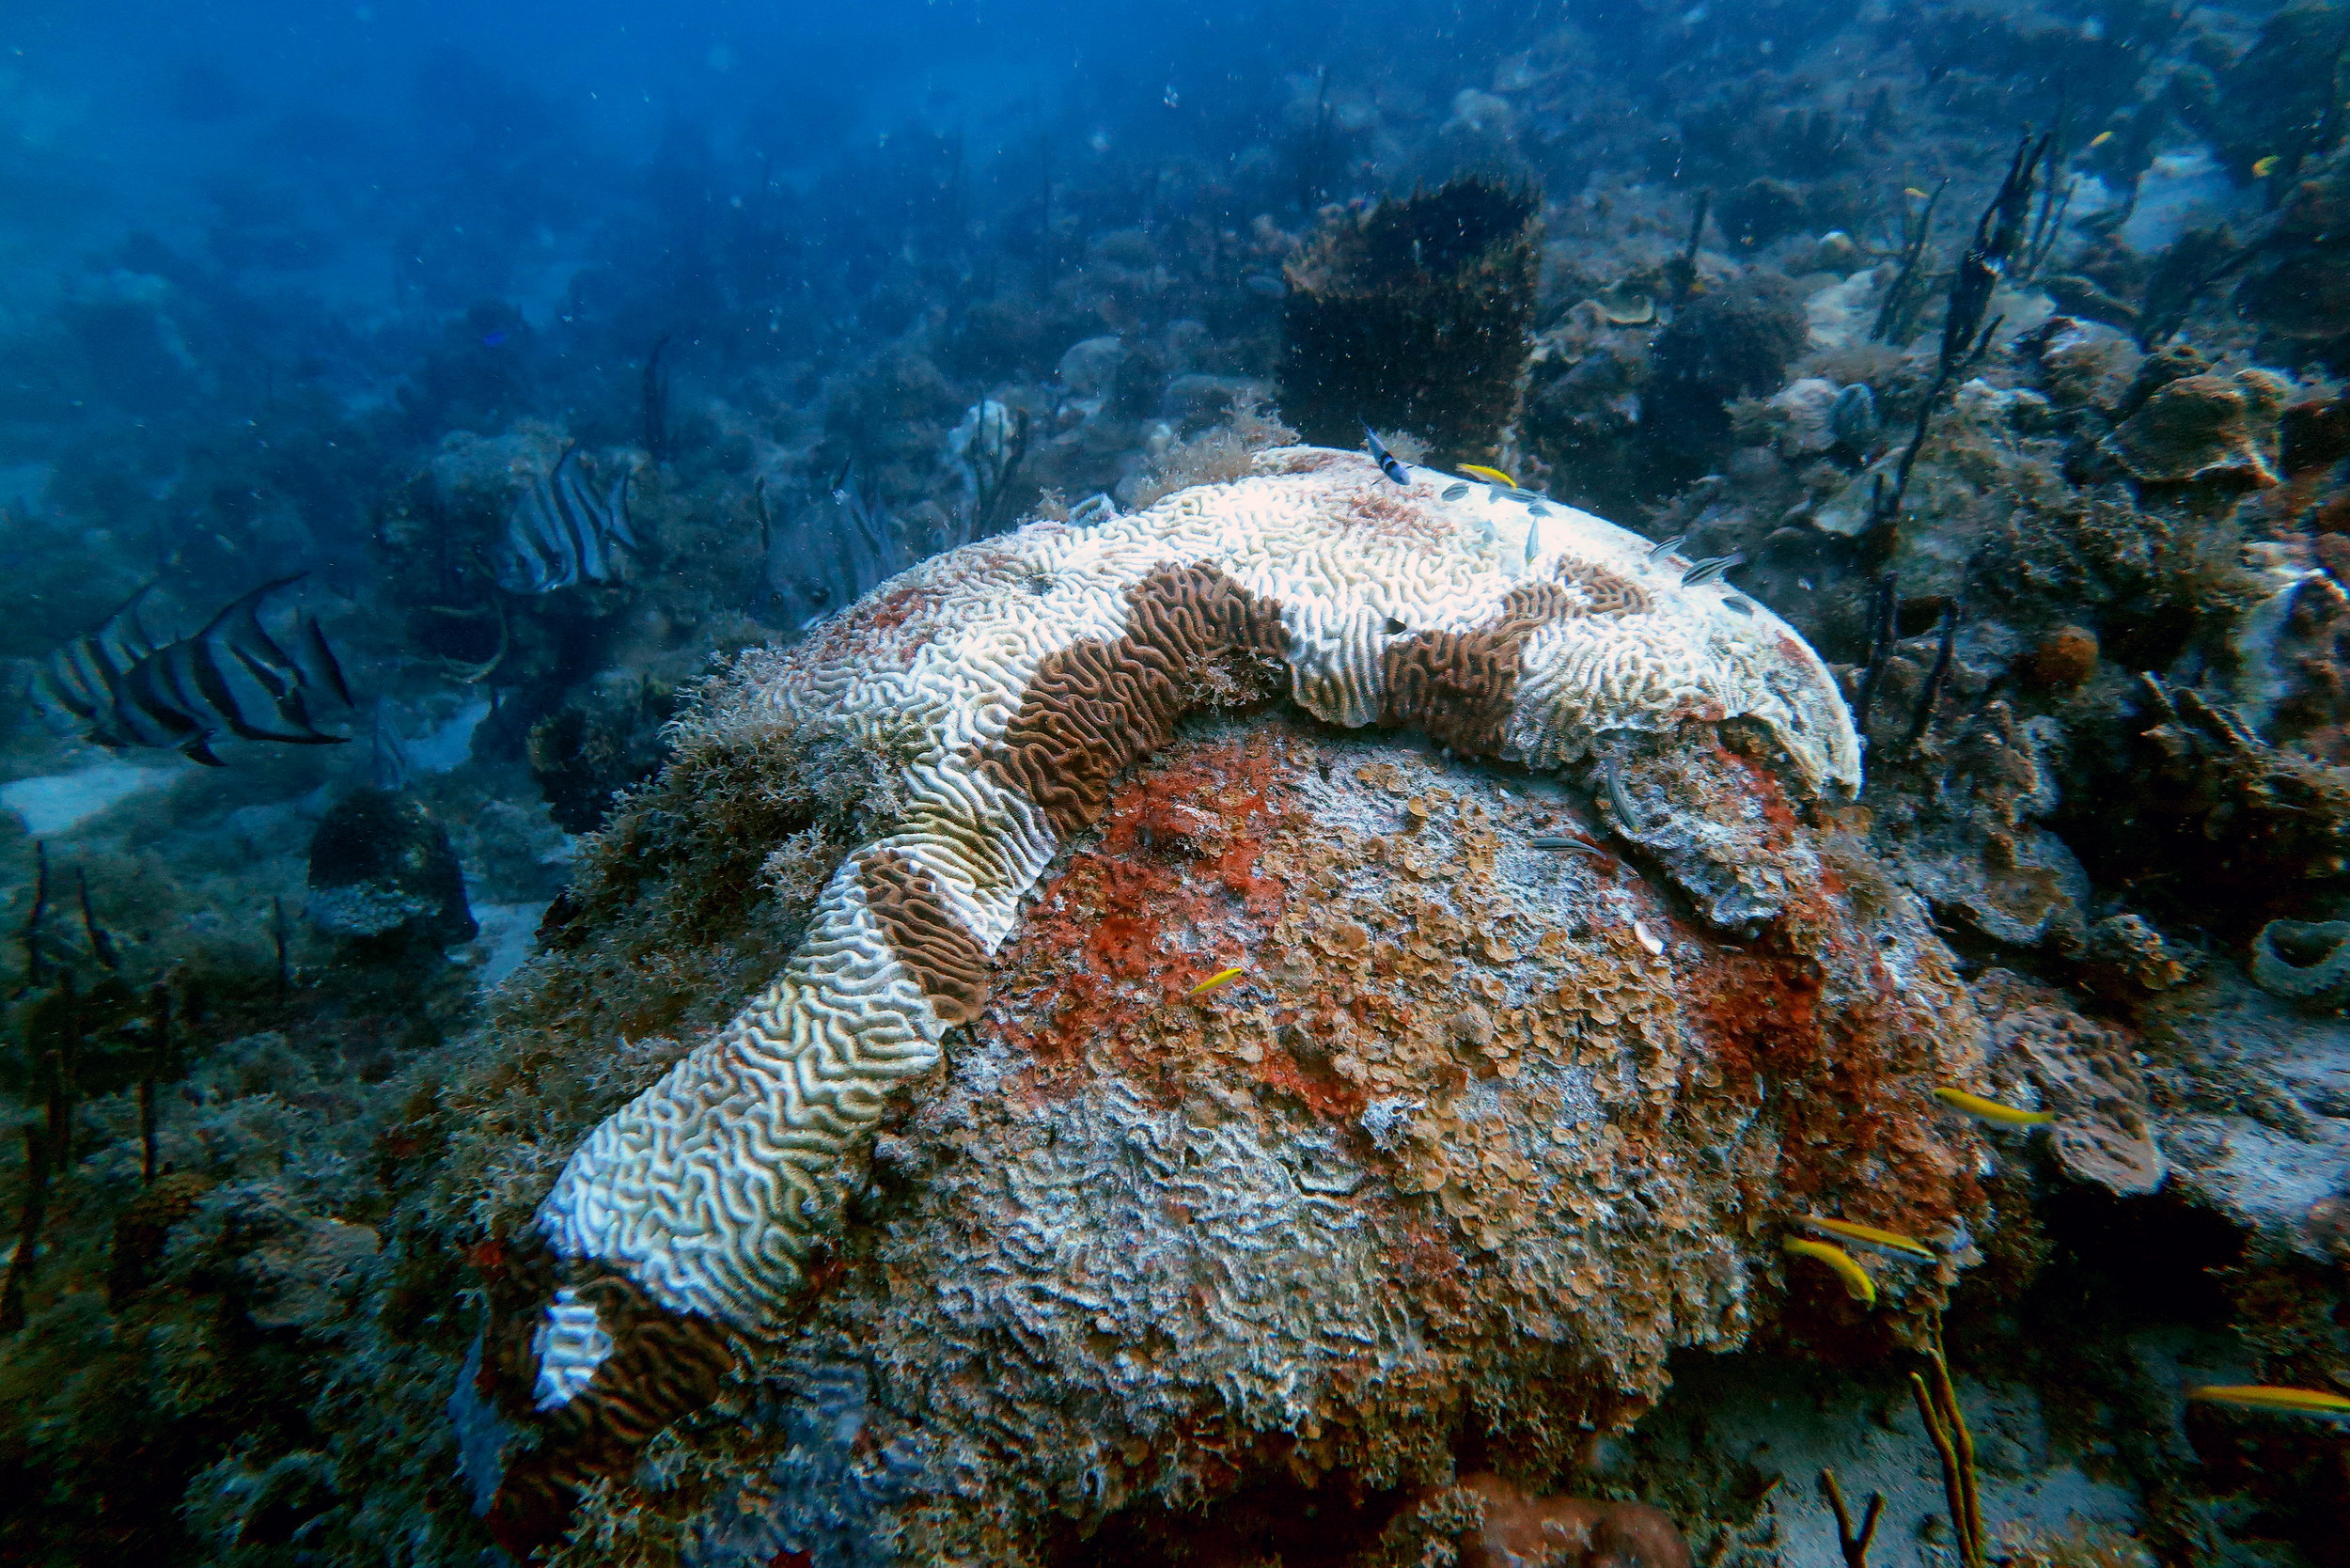 Diseased Boulder Brain Coral ( Colpophyllia natans ).  A boulder brain coral showing the large bright white patches of exposed skeleton characteristic of stony coral tissue loss disease.   Photo credit: Marilyn Brandt, Ph.D.